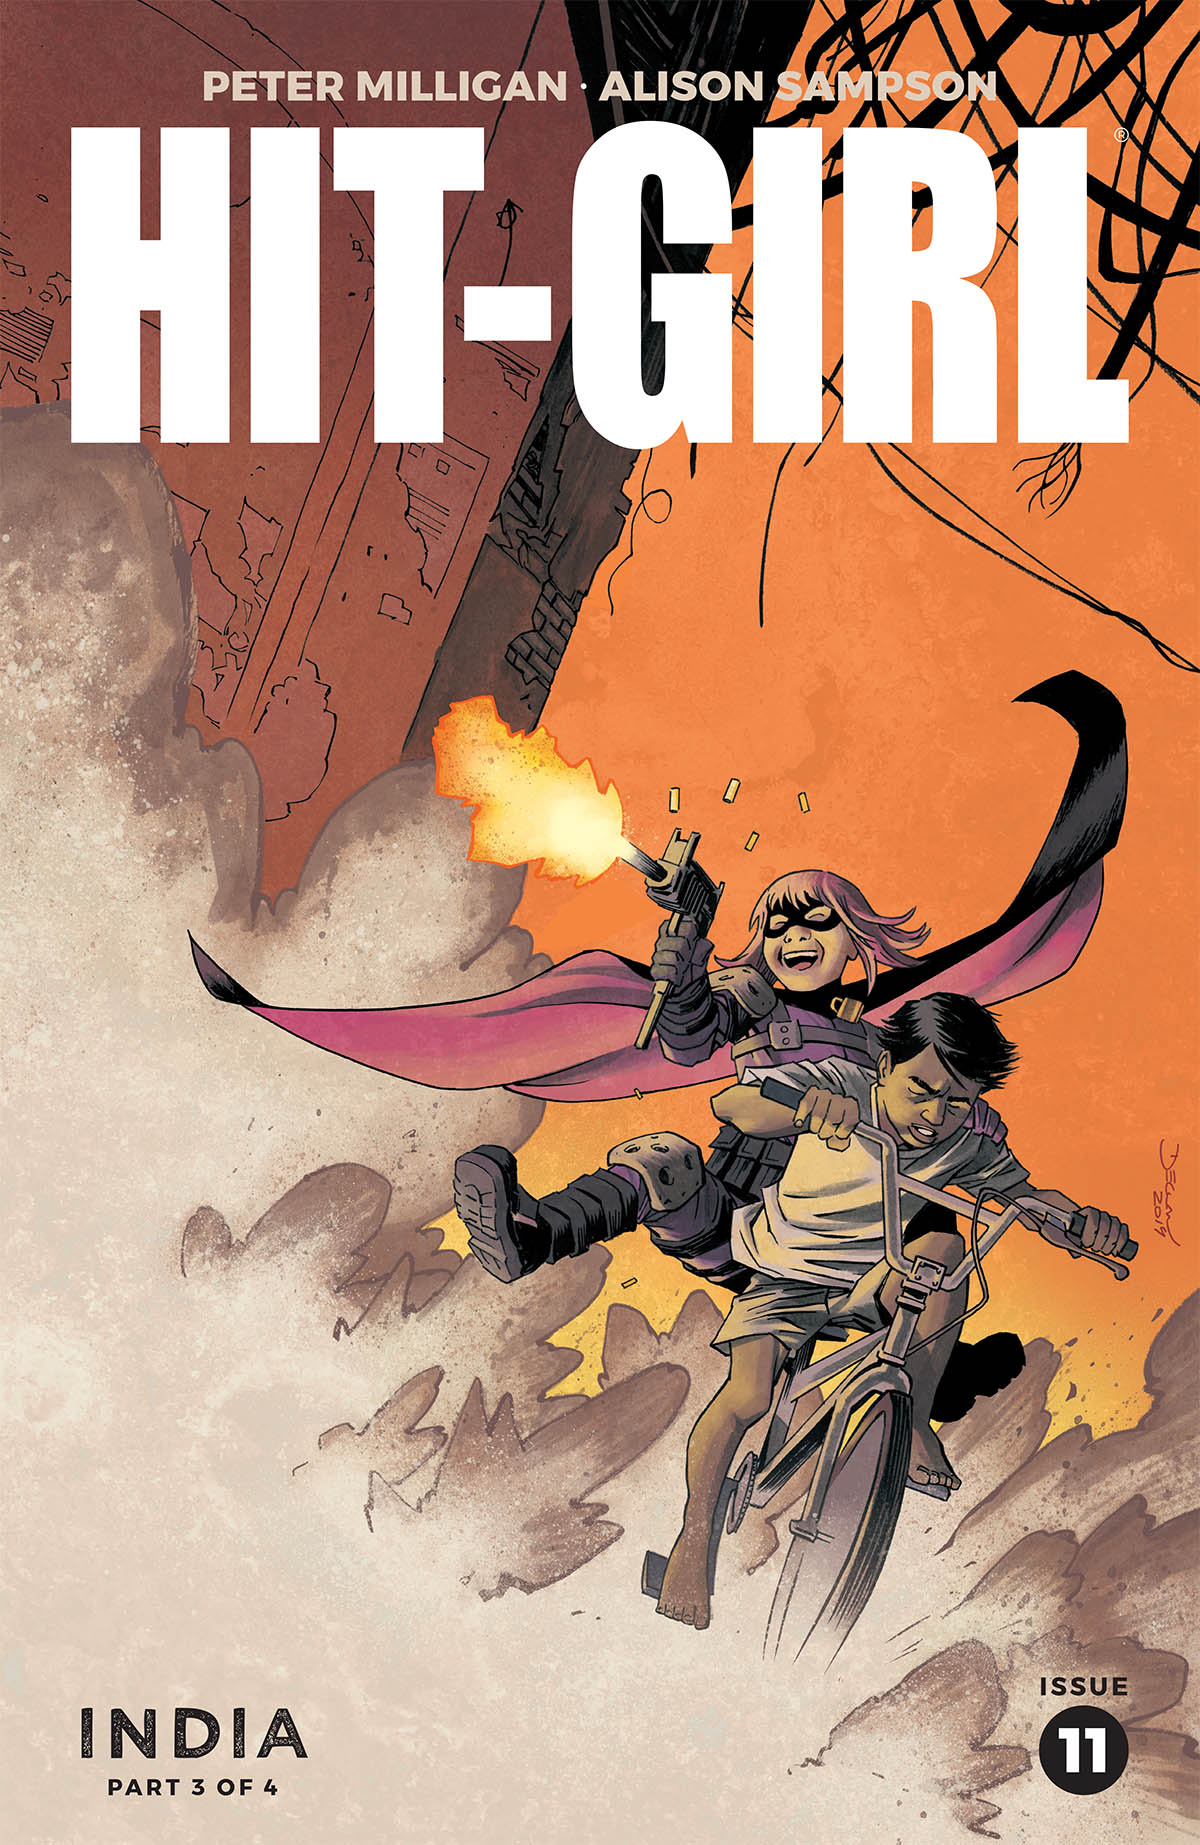 HIT-GIRL SEASON TWO #11 CVR A SHALVEY (MR)